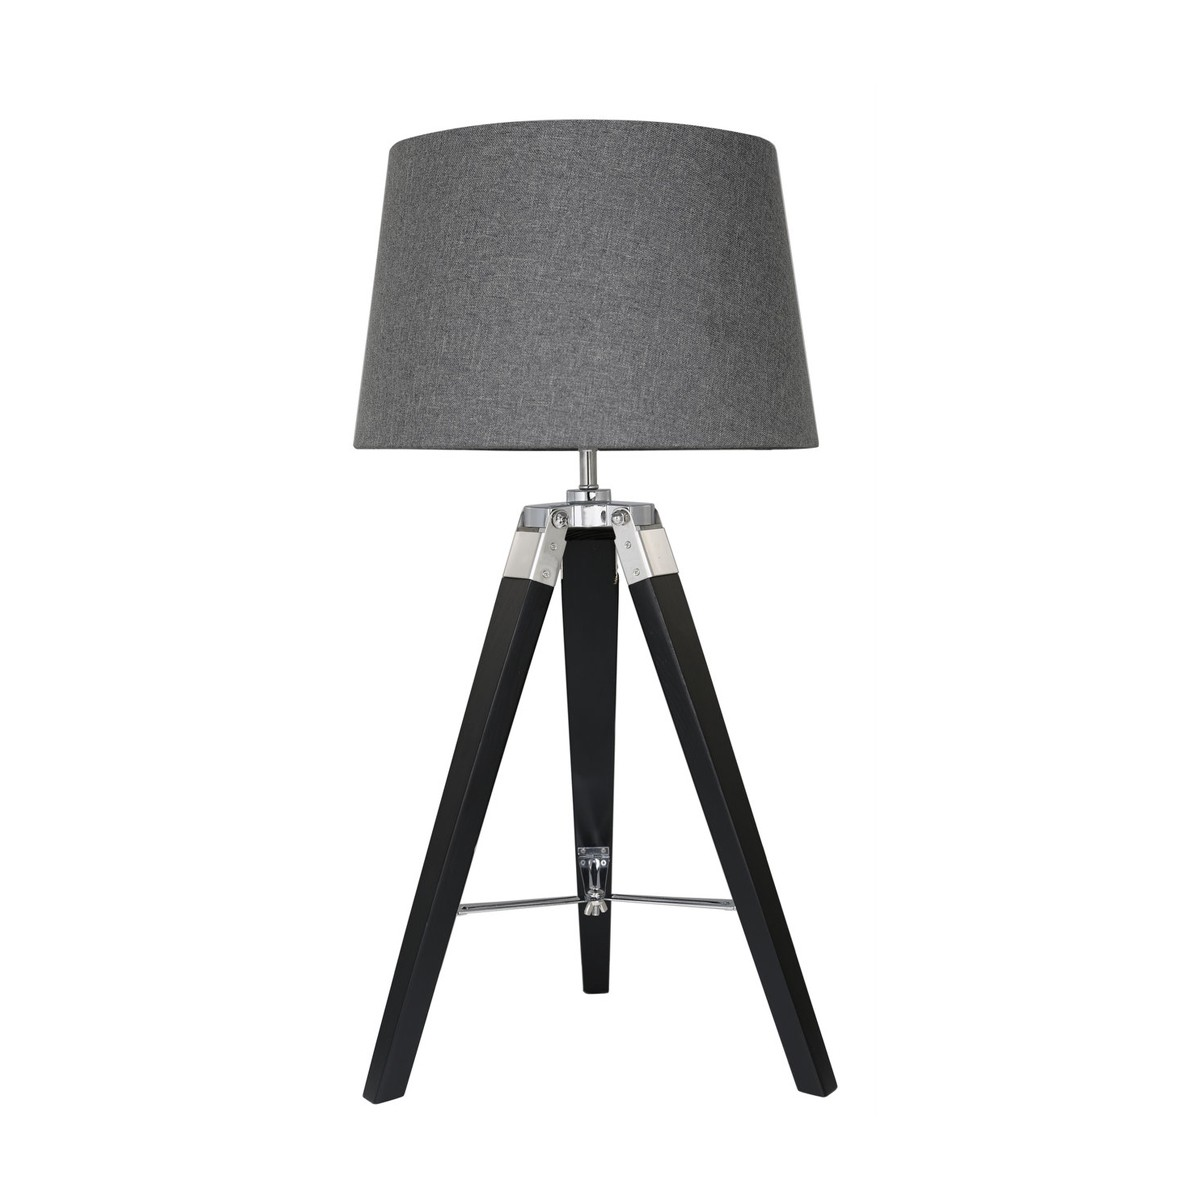 Ozlo - Black Tripod Table Lamp with Charcoal Shade